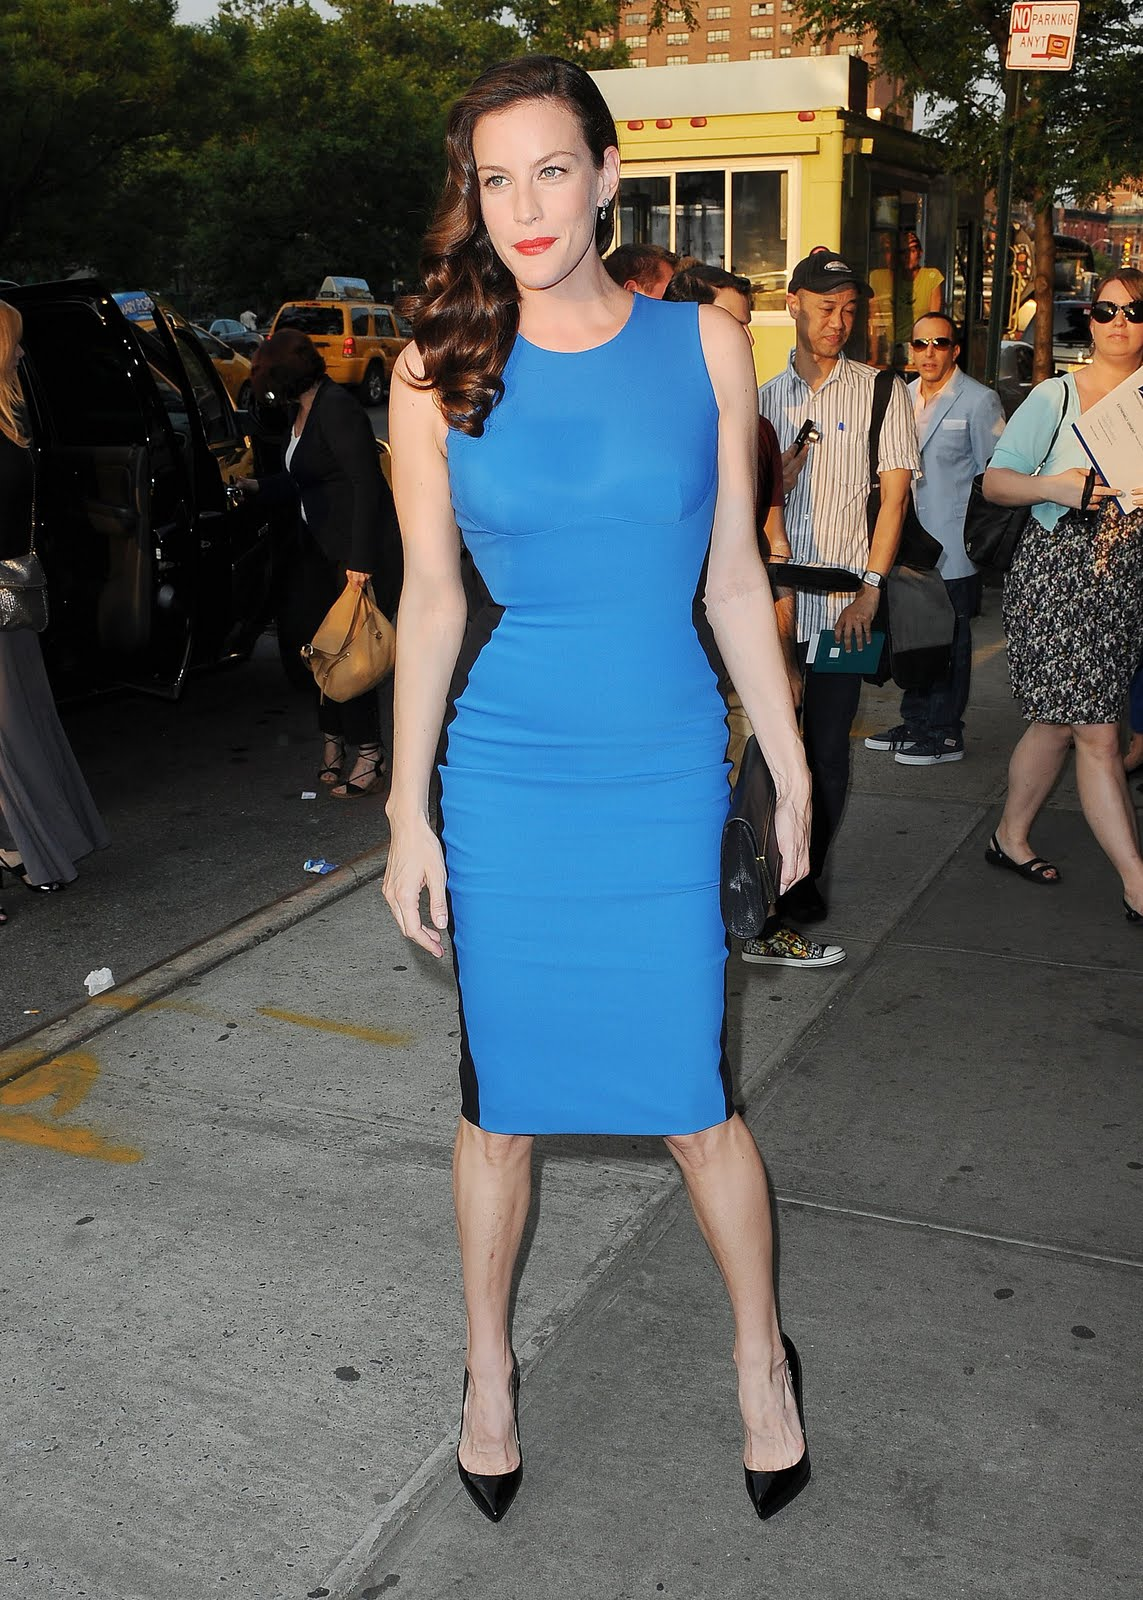 http://2.bp.blogspot.com/-sv2ipguwmJc/TkLYgBvRXBI/AAAAAAAAJh0/yatoebdkb7s/s1600/Liv_Tyler_attends_a_screening_of_The_Ledge_in_New_York_City_June_21_2011_039_123_215lo.jpg